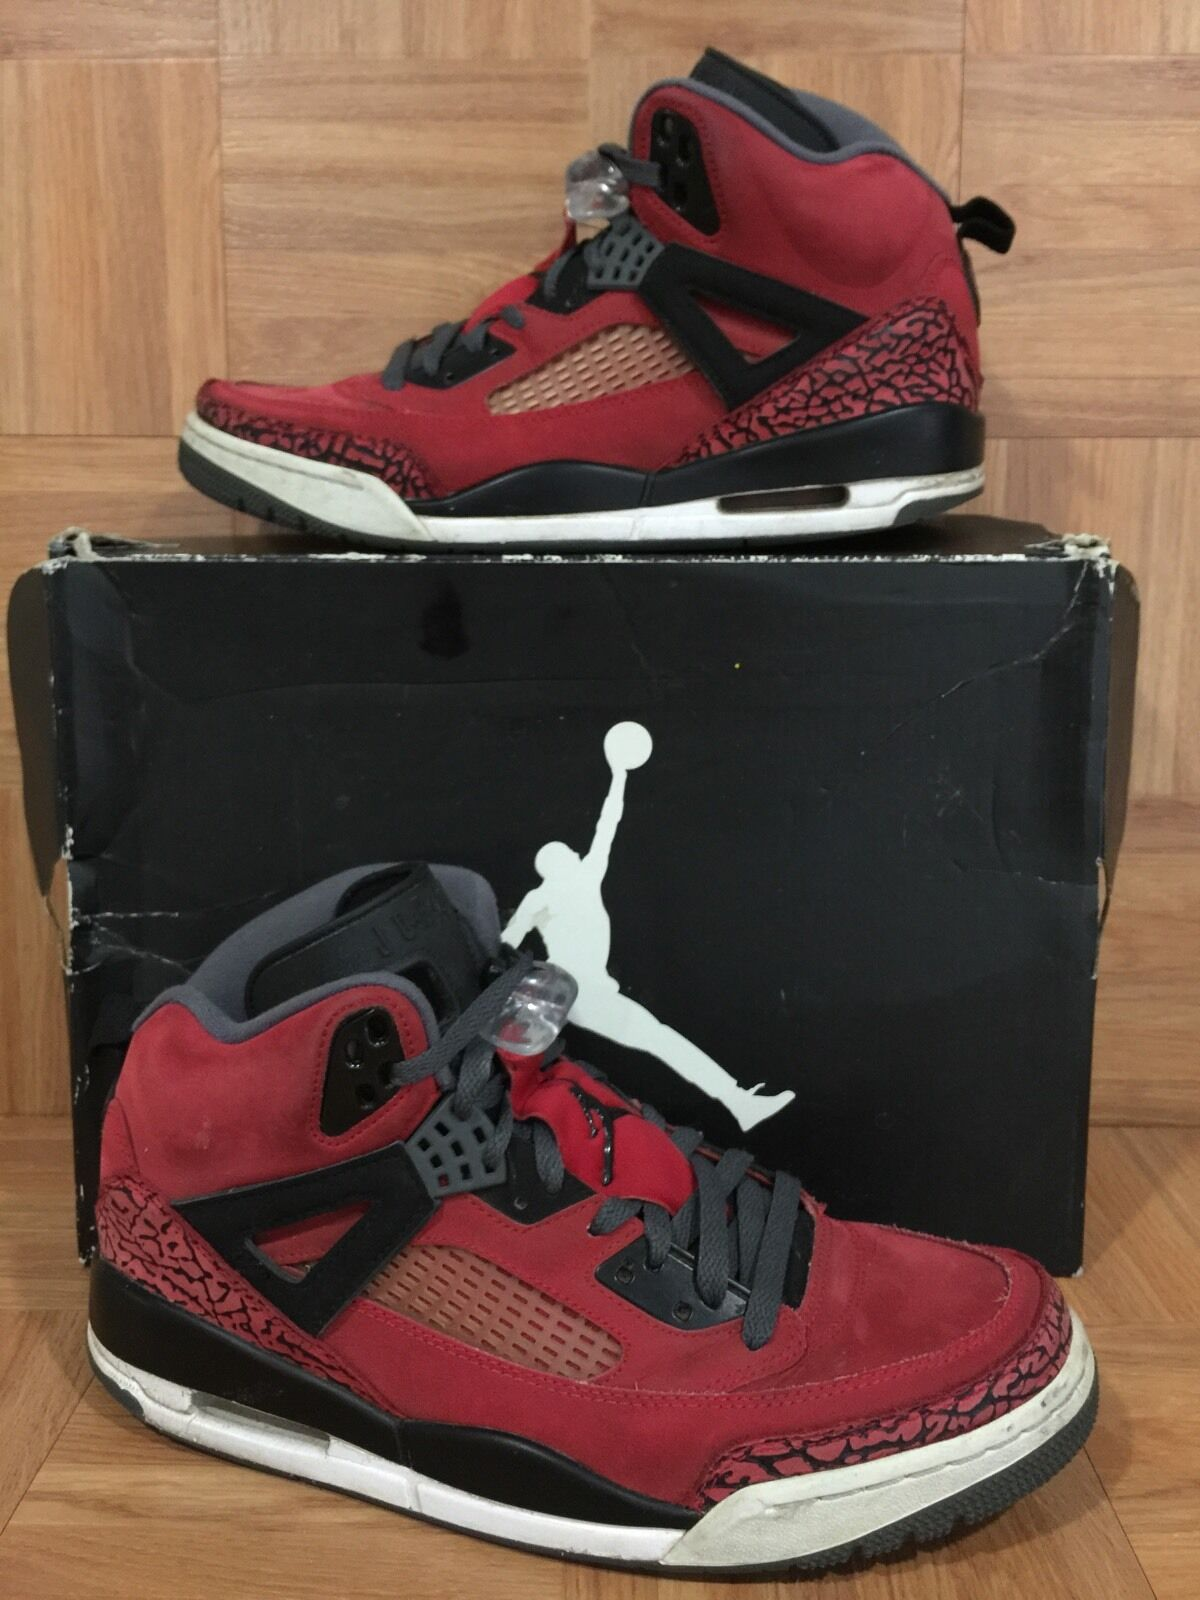 RARE� Nike Black Air Jordan Spizike Toro Bravo Red Black Nike Dark Gray Sz 8 315371-601 98e72e